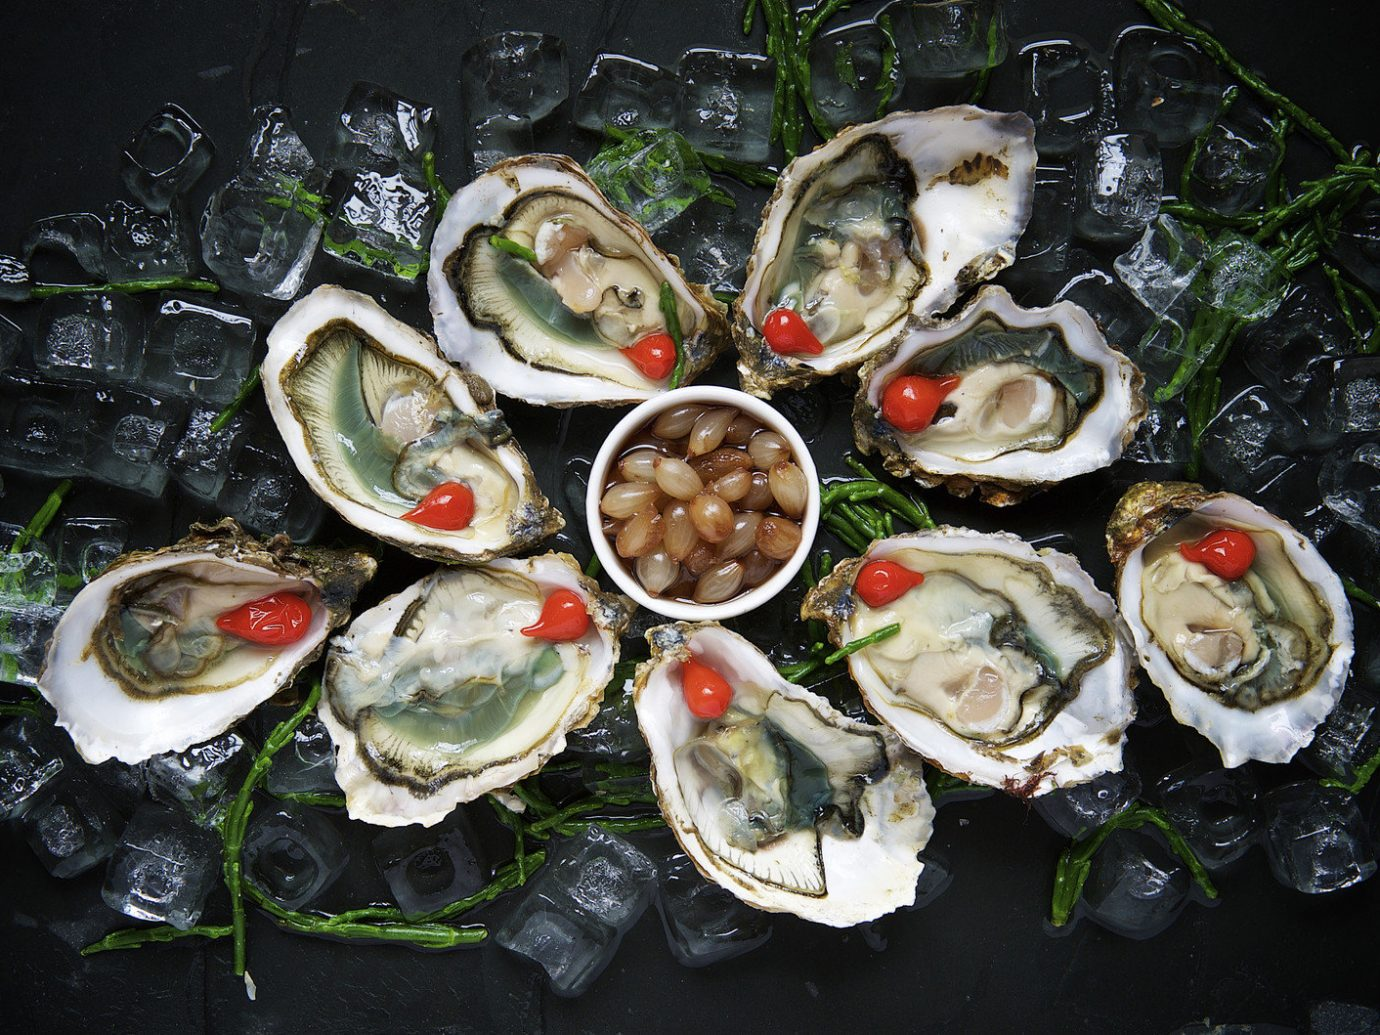 Budget food Seafood dish mussel invertebrate clams oysters mussels and scallops oyster cuisine flower meal variety several